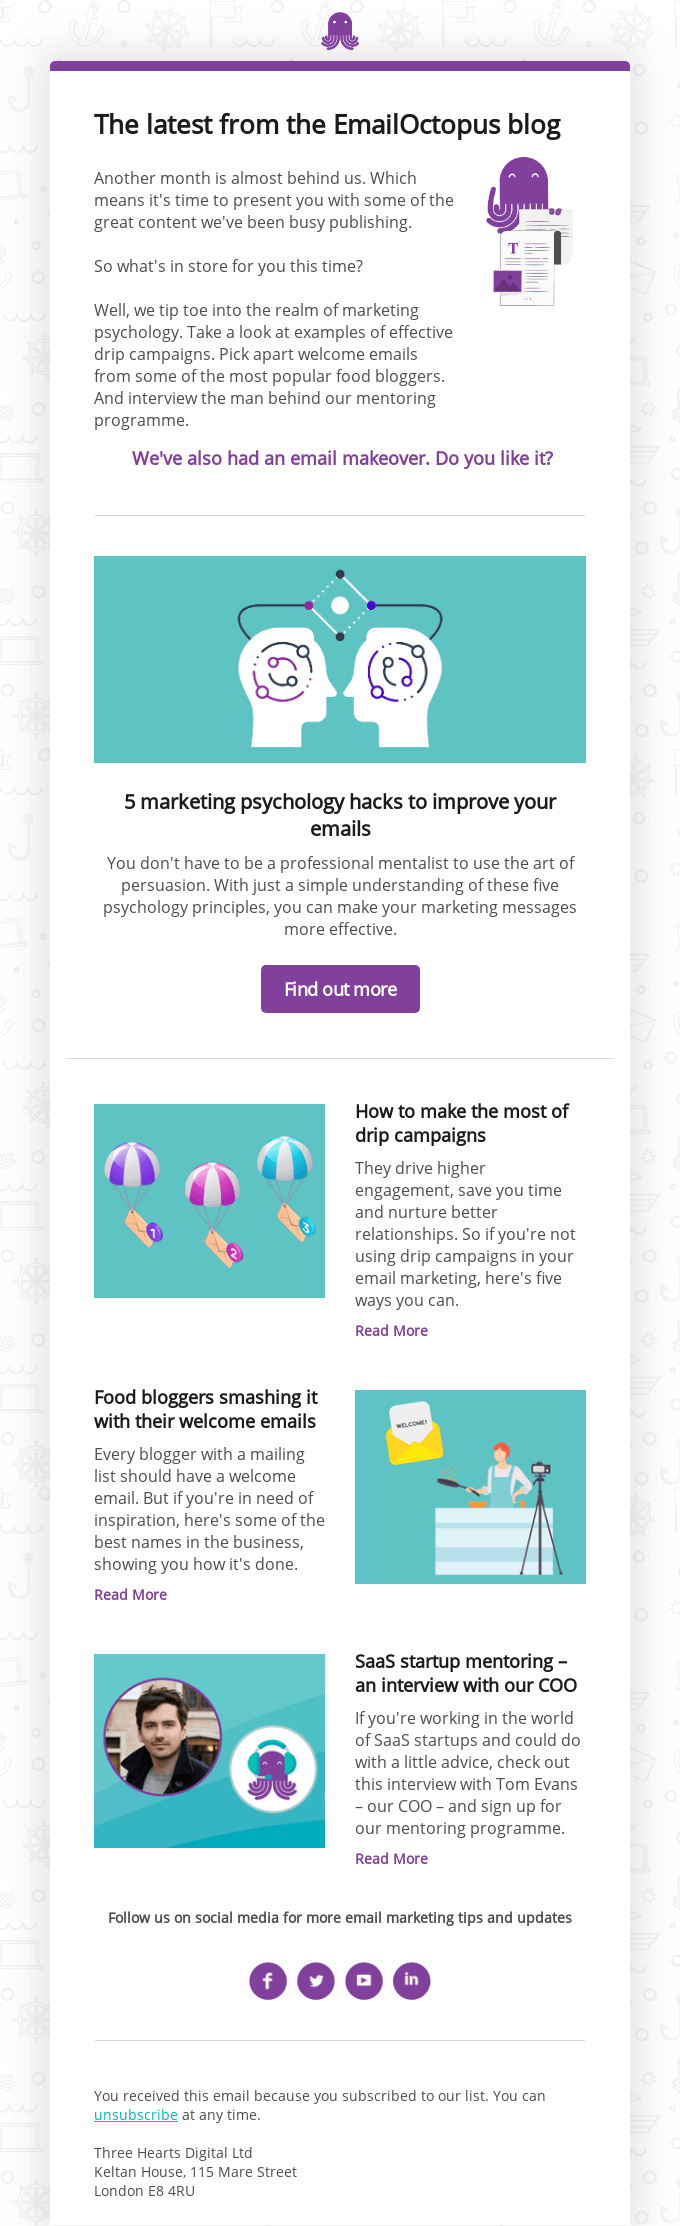 How psychology can improve your emails